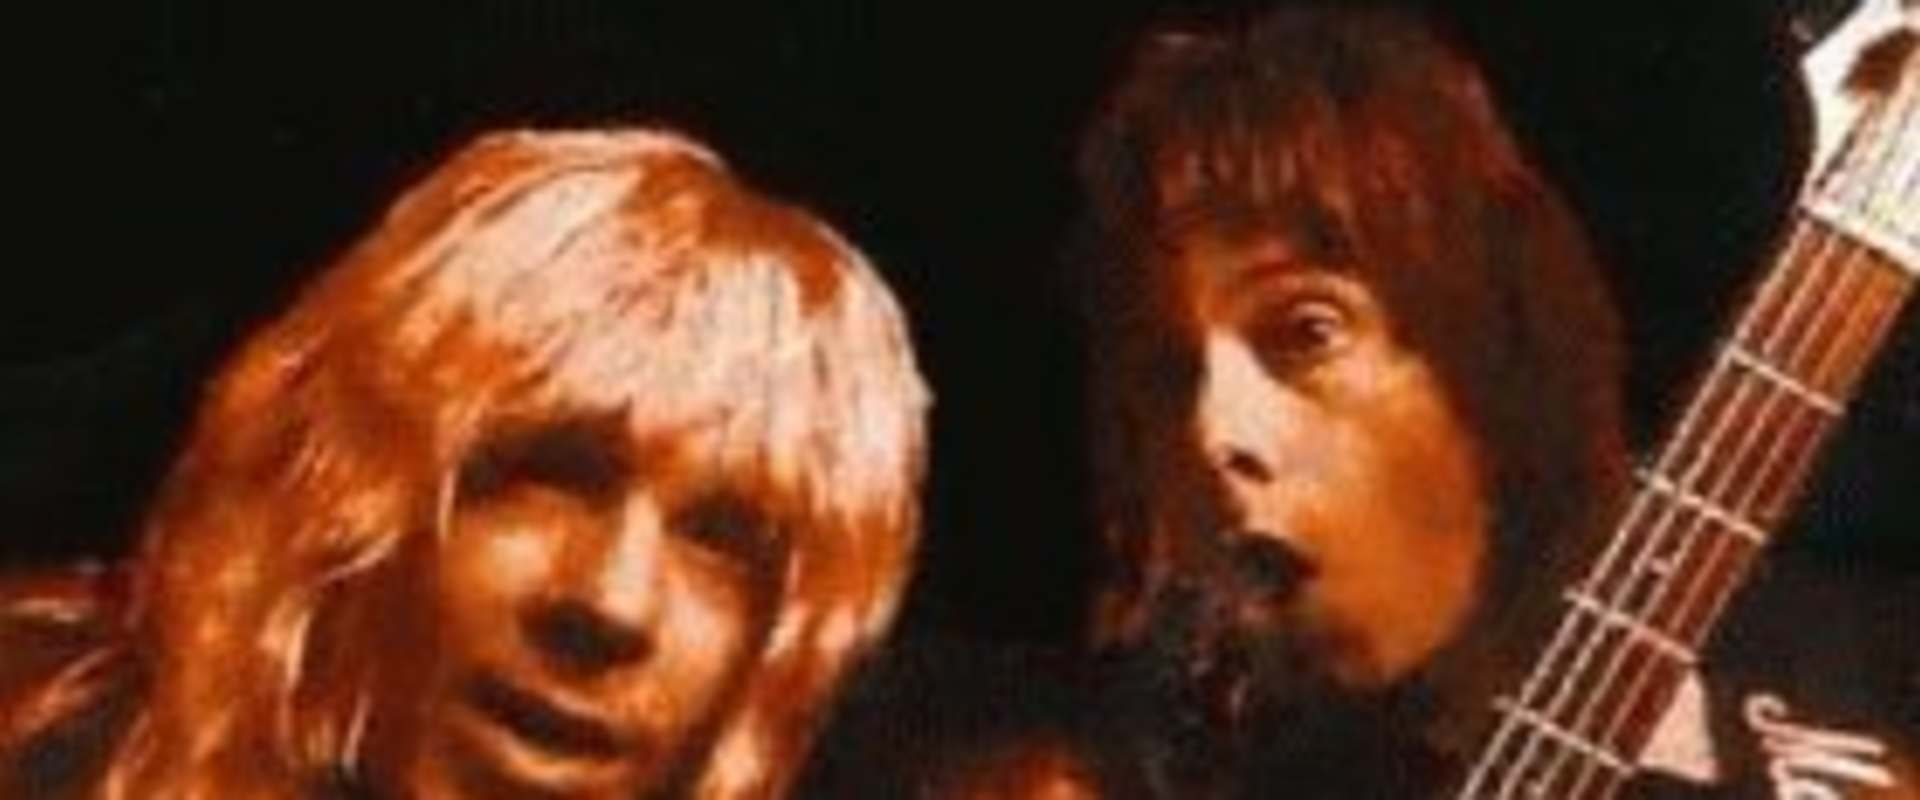 A Spinal Tap Reunion: The 25th Anniversary London Sell-Out background 2